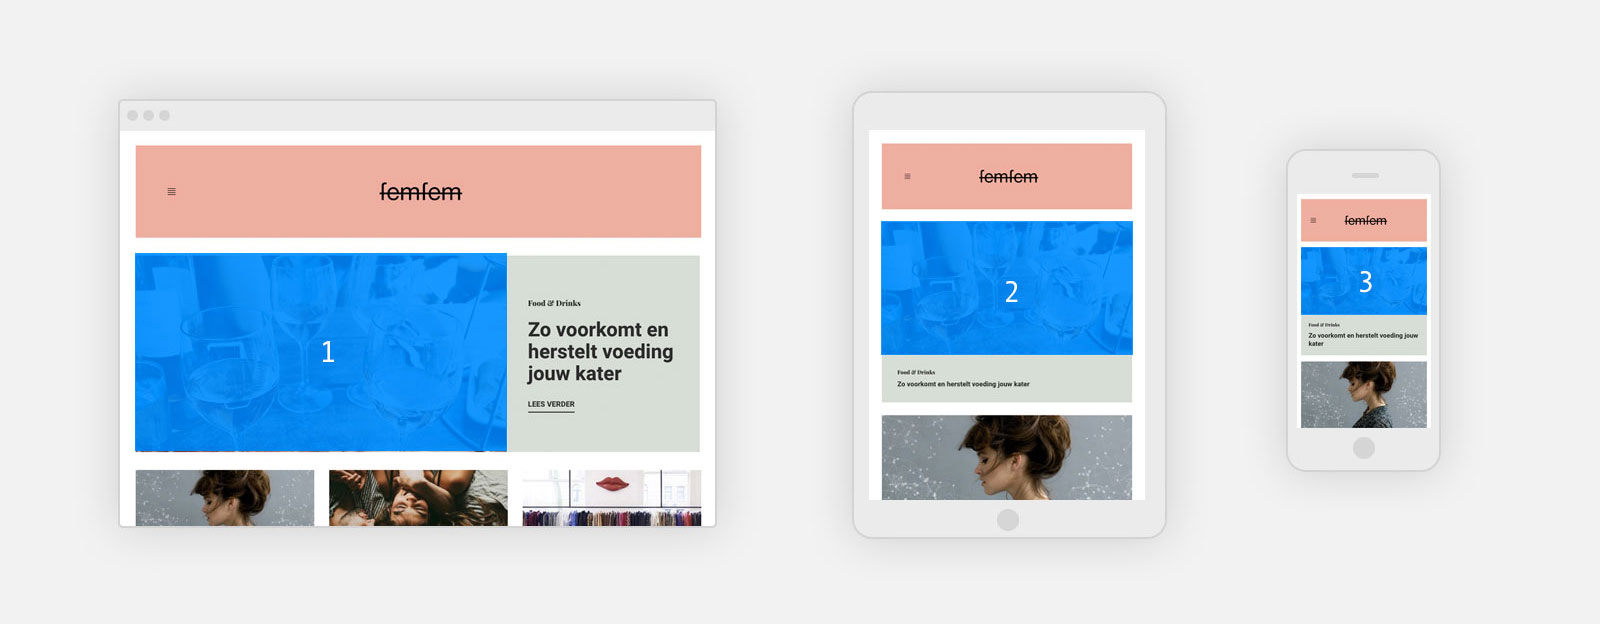 Creating responsive images with srcset and sizes - Diffuse